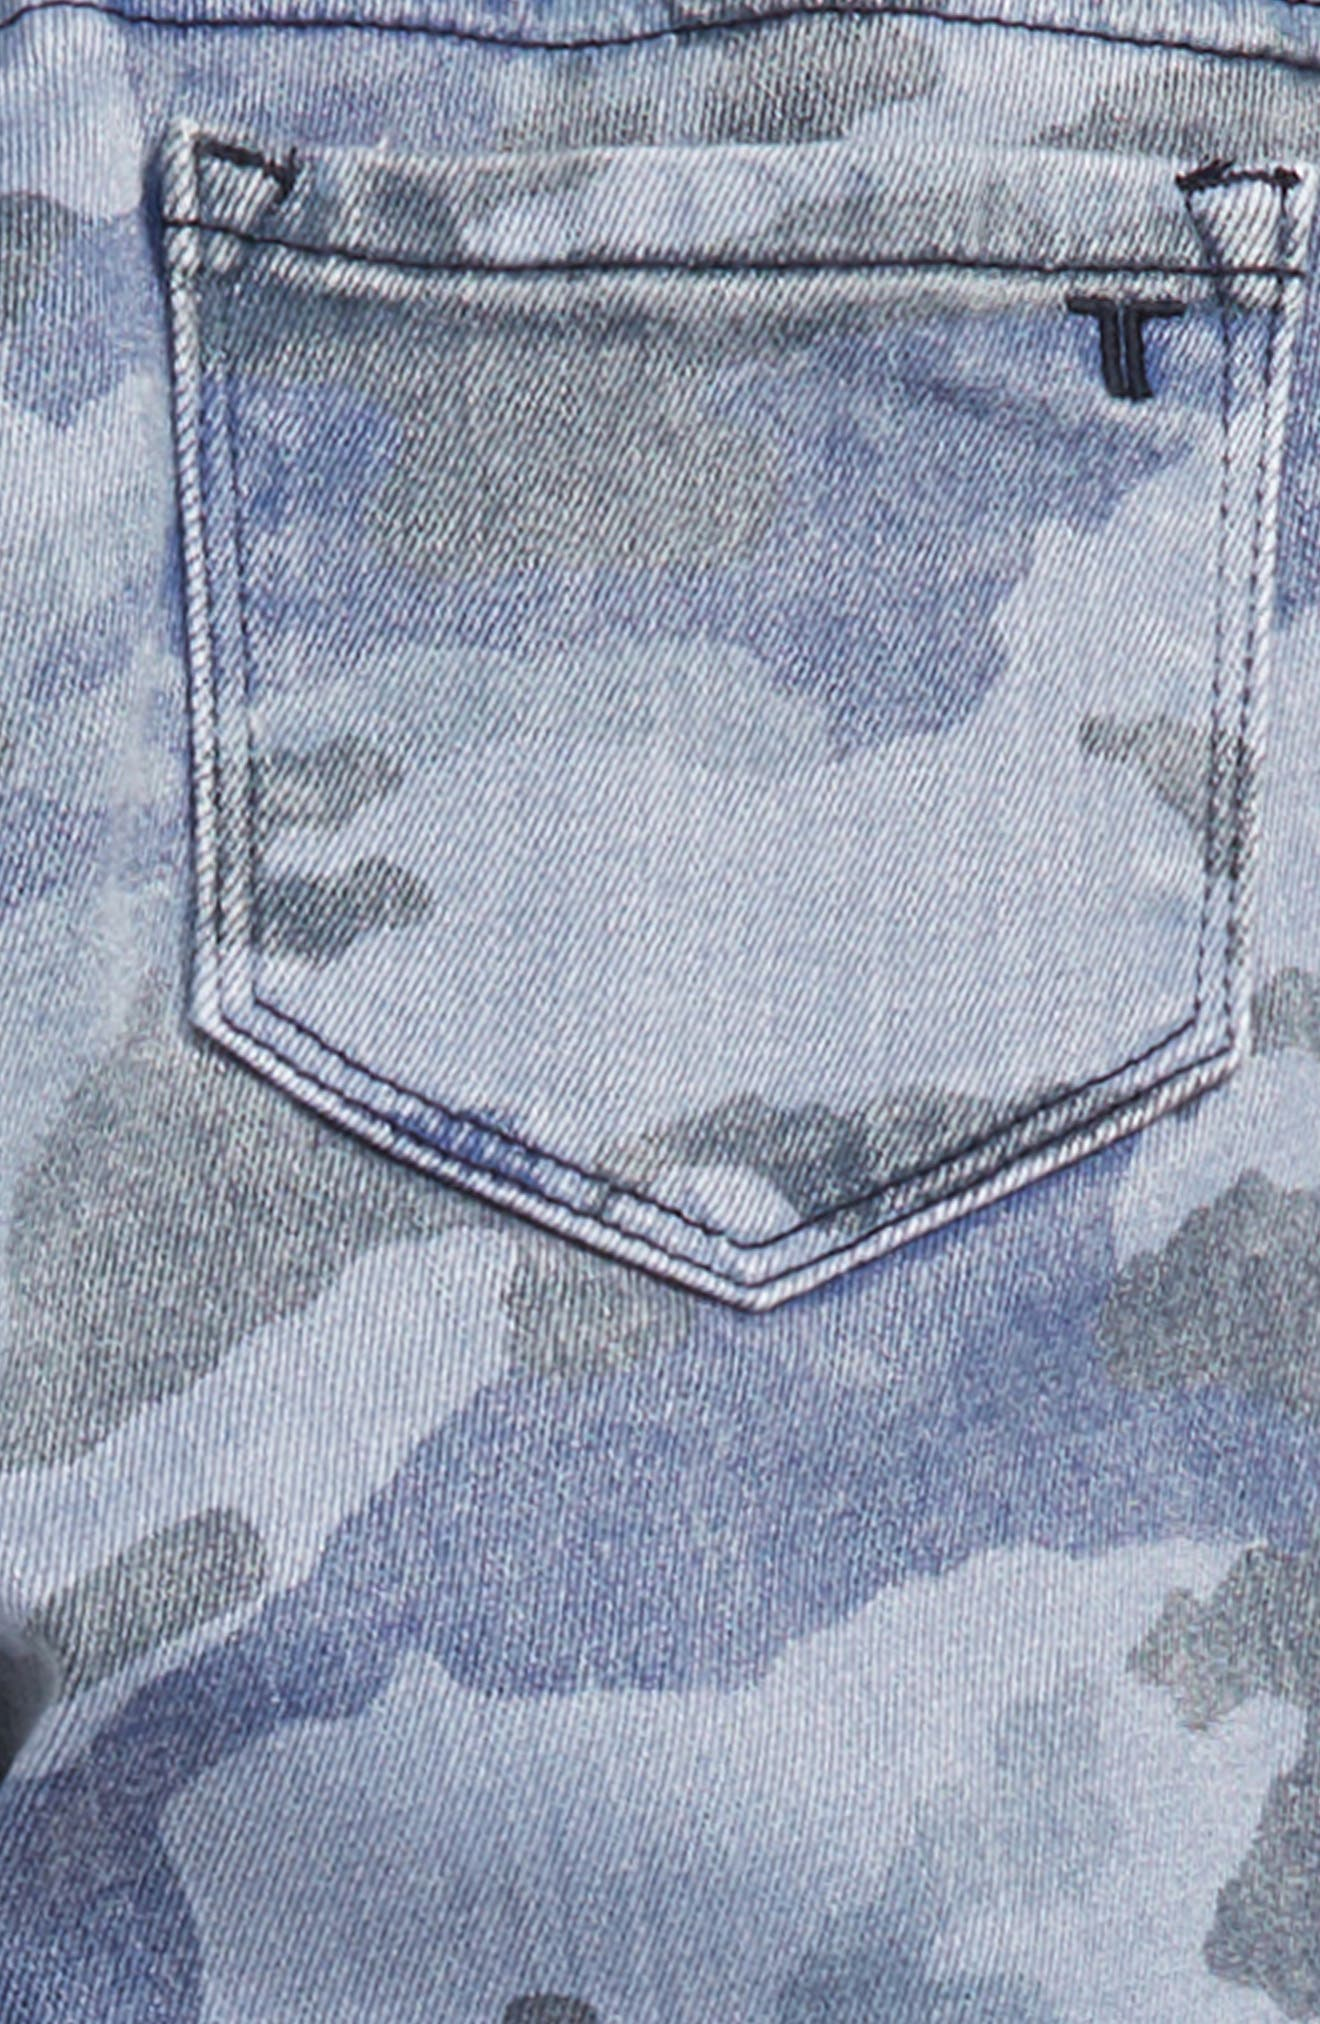 Camo Skinny Twill Pants,                             Alternate thumbnail 3, color,                             BLUE CAMO